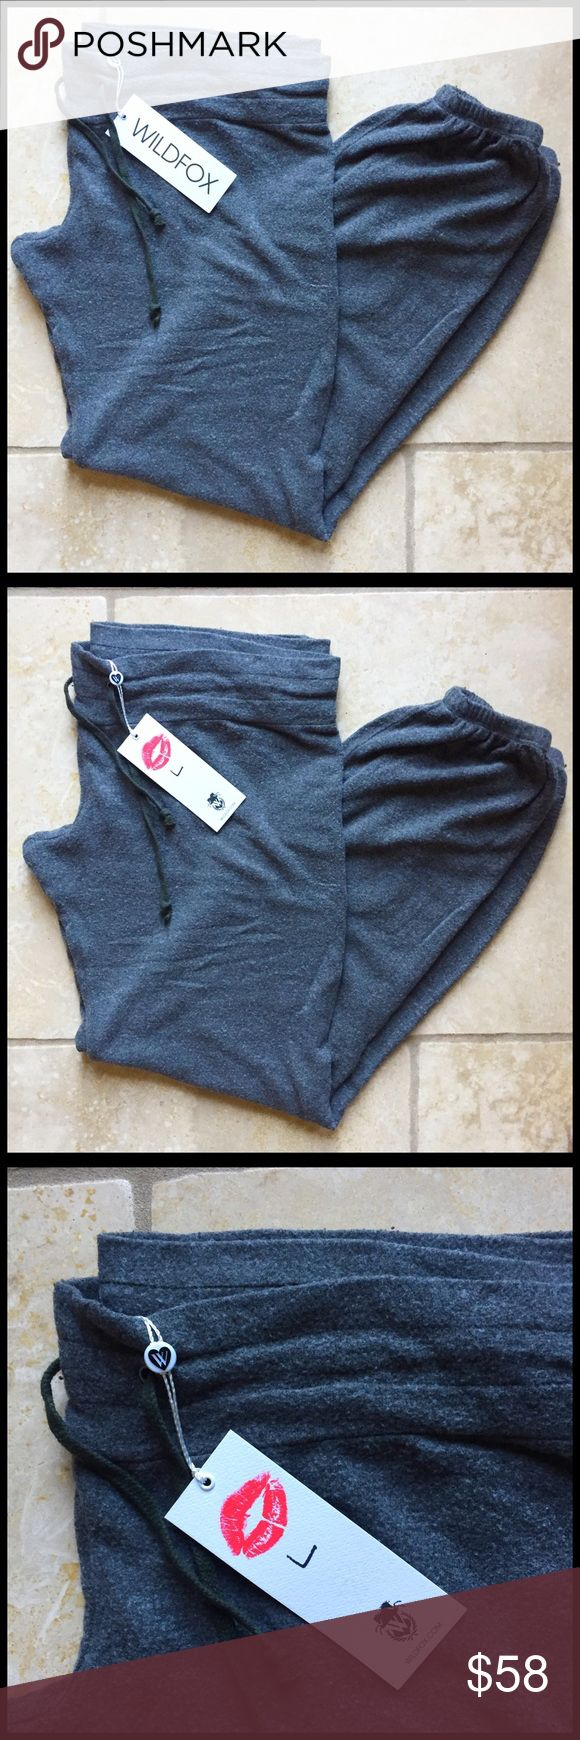 Wildfox Sweatpants / Size Large / Heathered Moss Classic, coziest sweats you'll ever own from Wildfox. Heathered moss, almost charcoal grey. Drawstring at waist. Size L. Brand new with original tags. Wildfox Pants Track Pants & Joggers